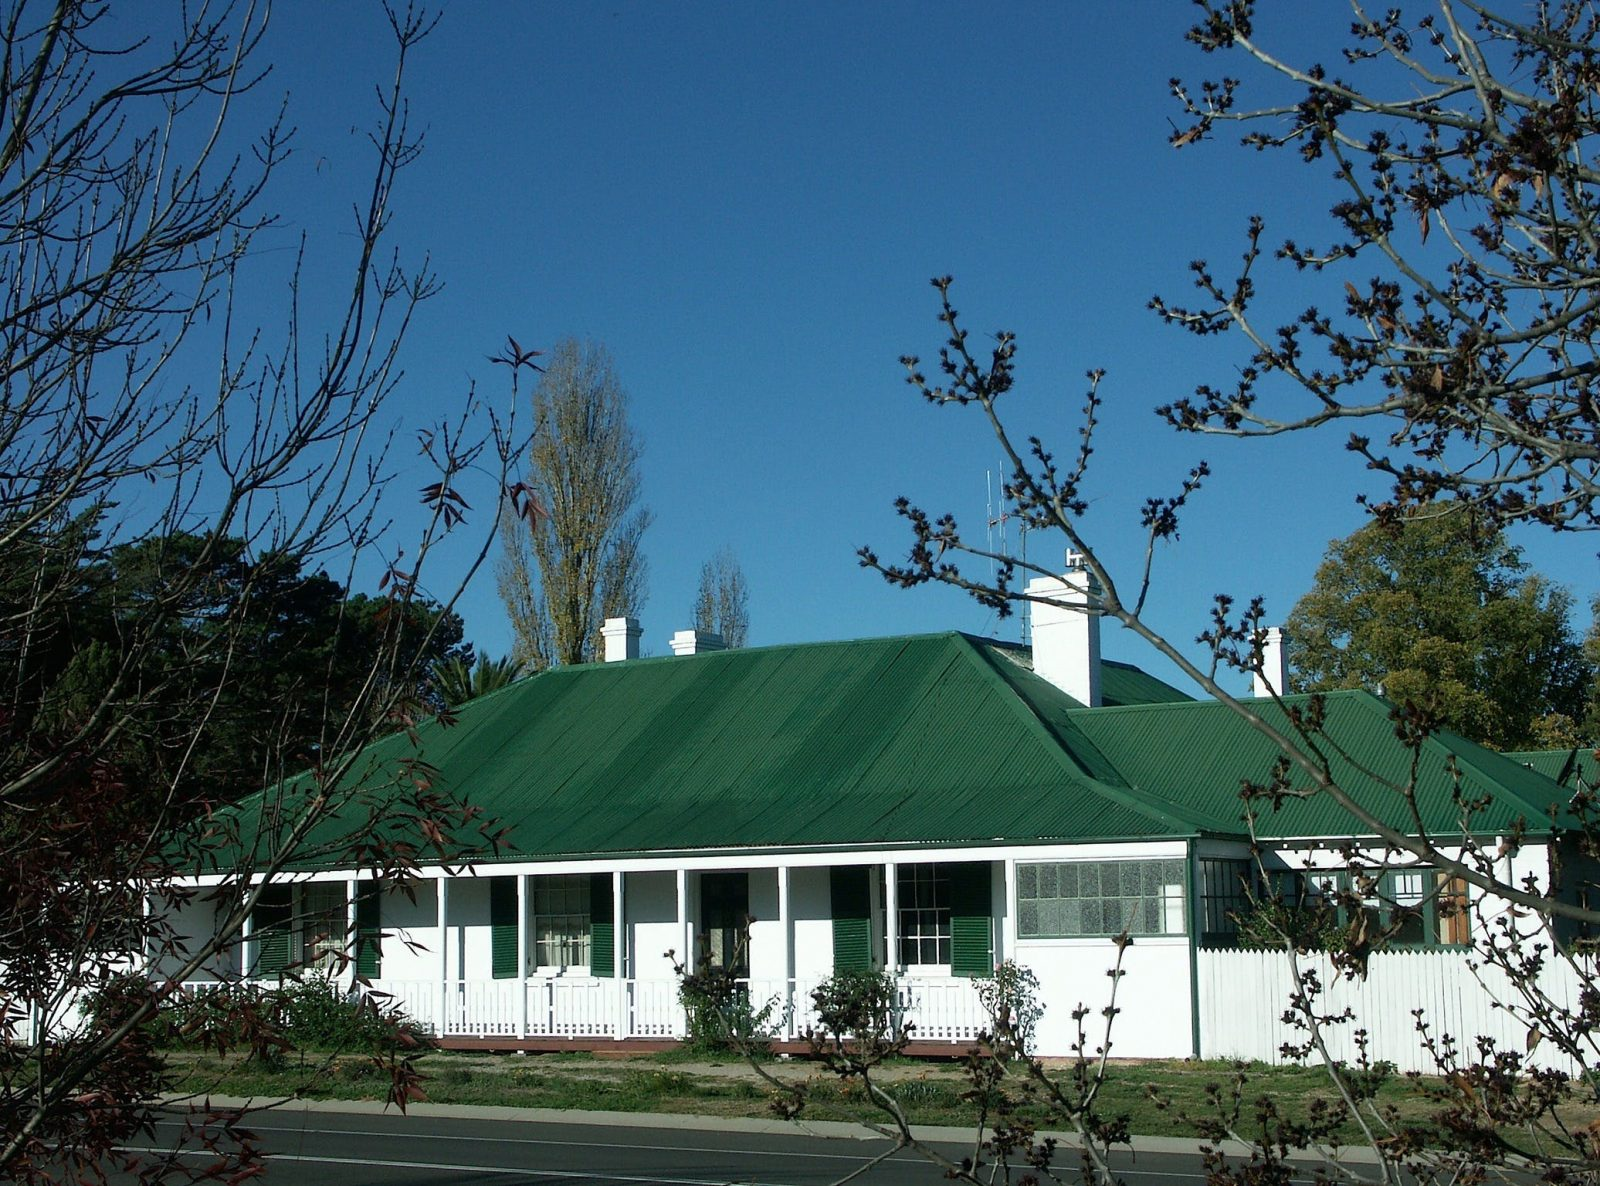 The front of the property. White house with green roof